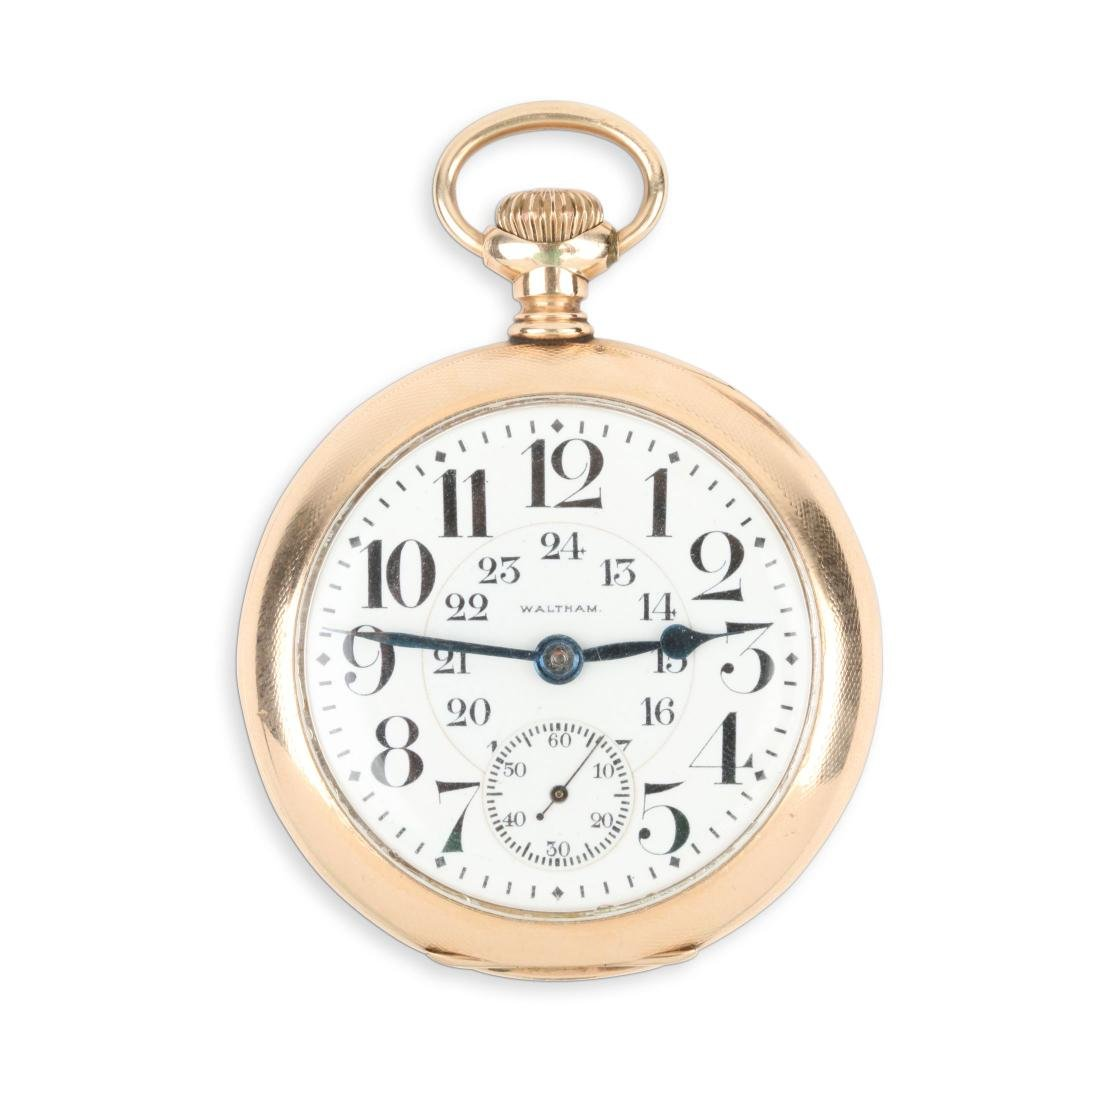 Waltham, Canadian Pacific Railway Pocket Watch